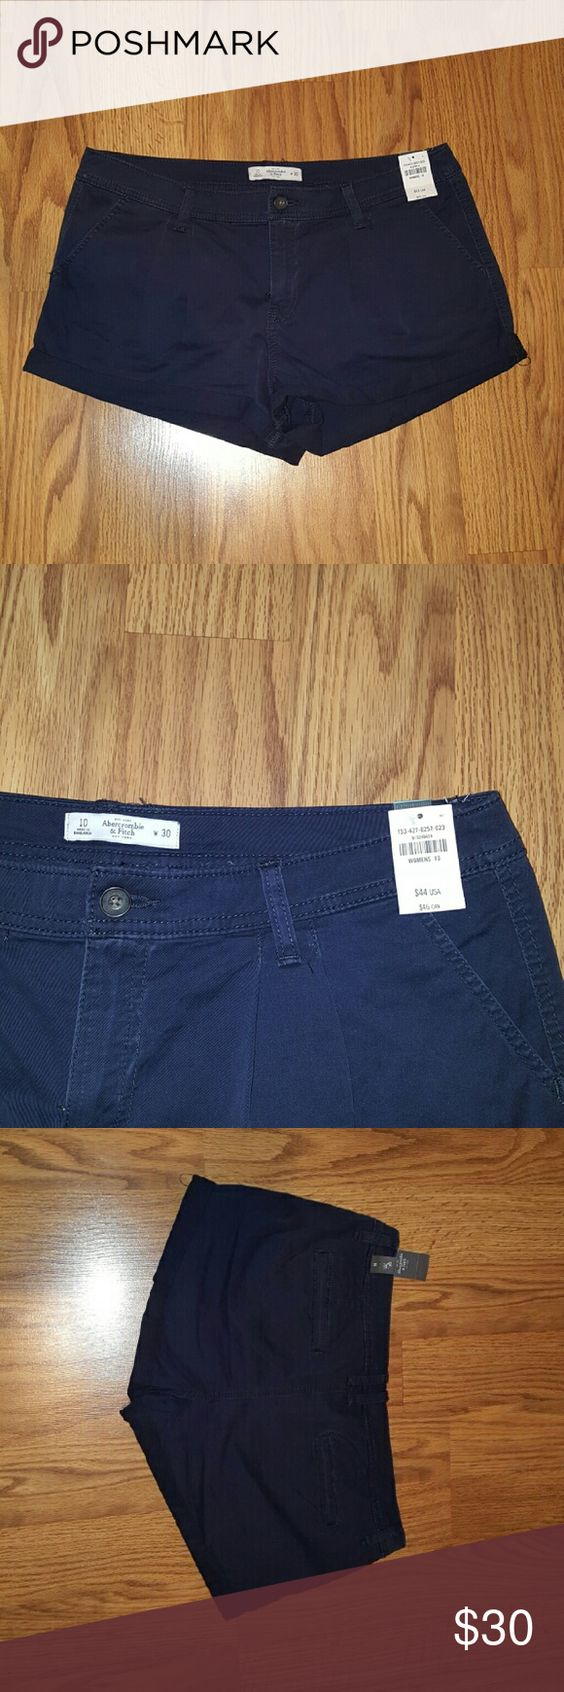 Bnwt womens Abercrombie shorts Brand new womens Abercrombie shorts size 10 waist size 30. Pet and smoke free home. Fabric: 98% cotton 2% Elastine. Posted on other sites.  Cheaper on Mer_ca_ri Abercrombie & Fitch Shorts